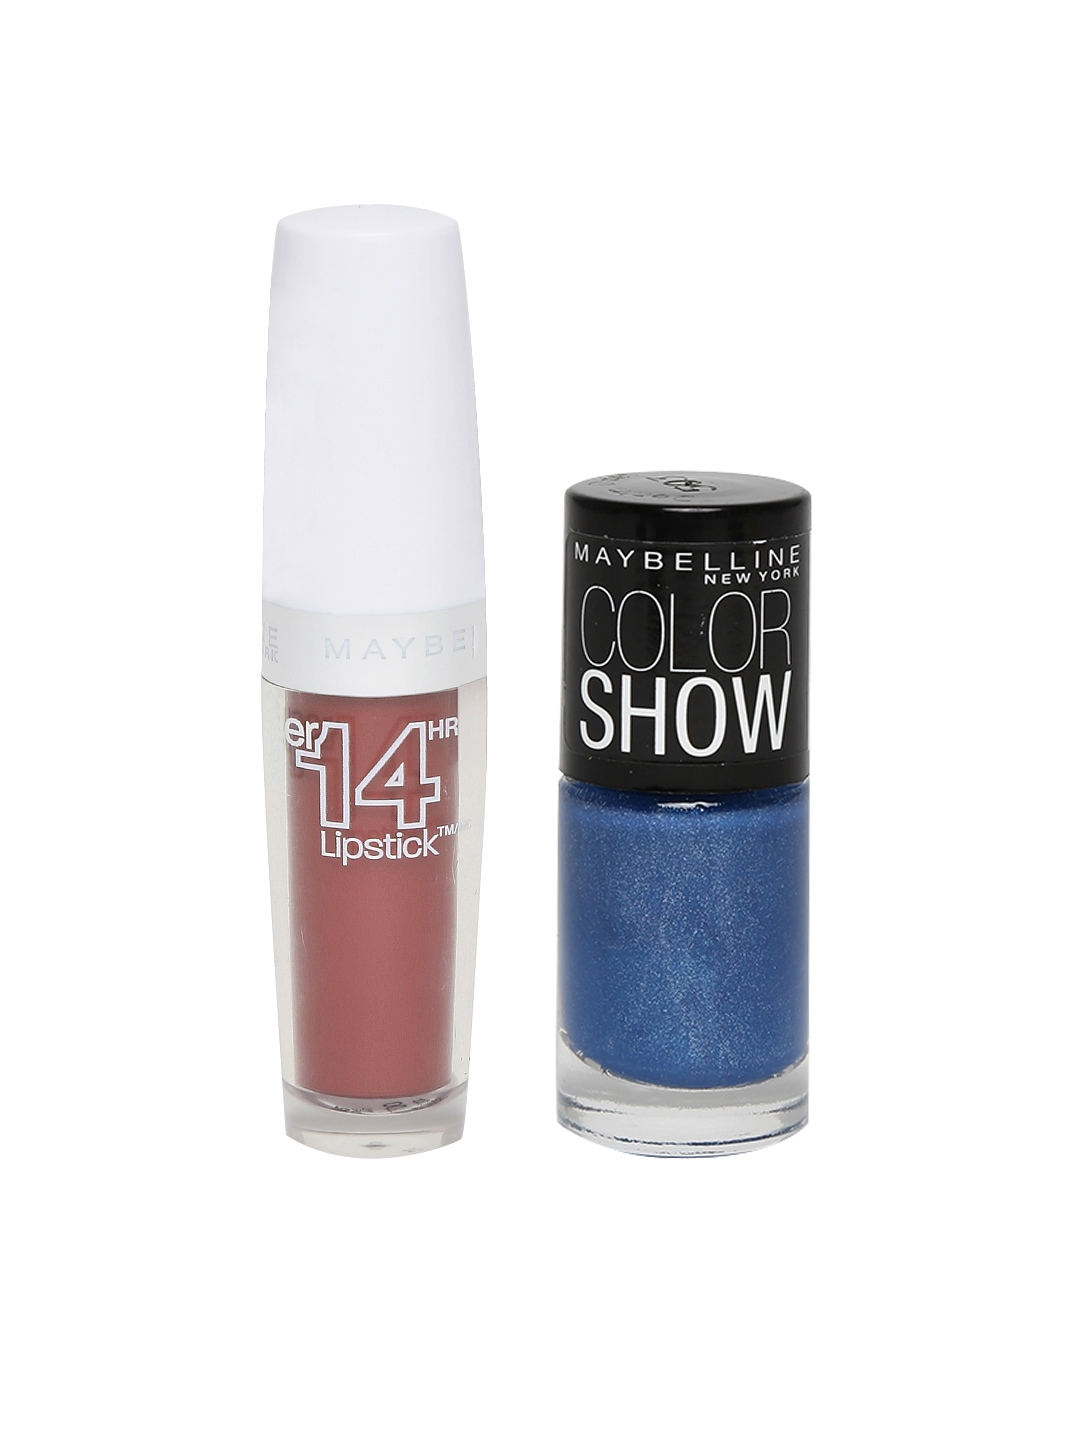 Maybelline shopping online